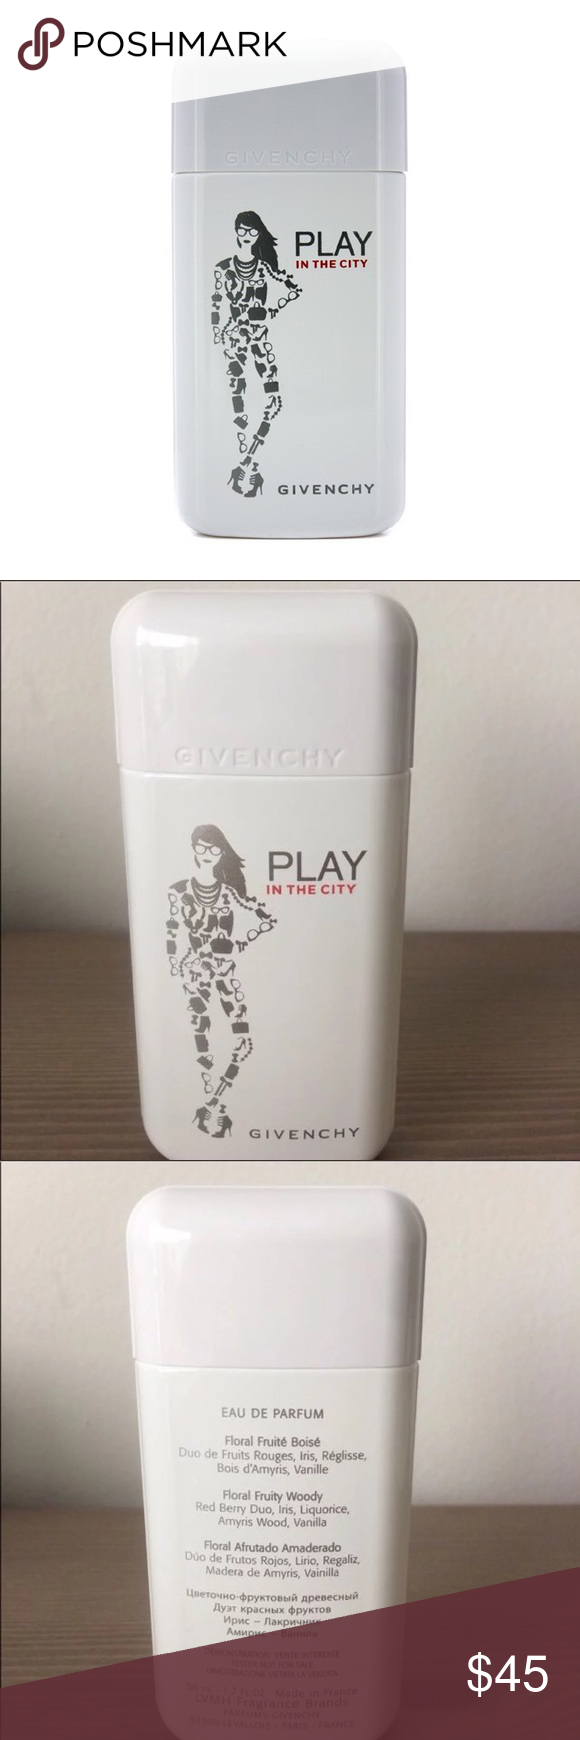 City Givenchy1 By Oz 7 Play Givenchy For Her In Edp The W2DIEH9